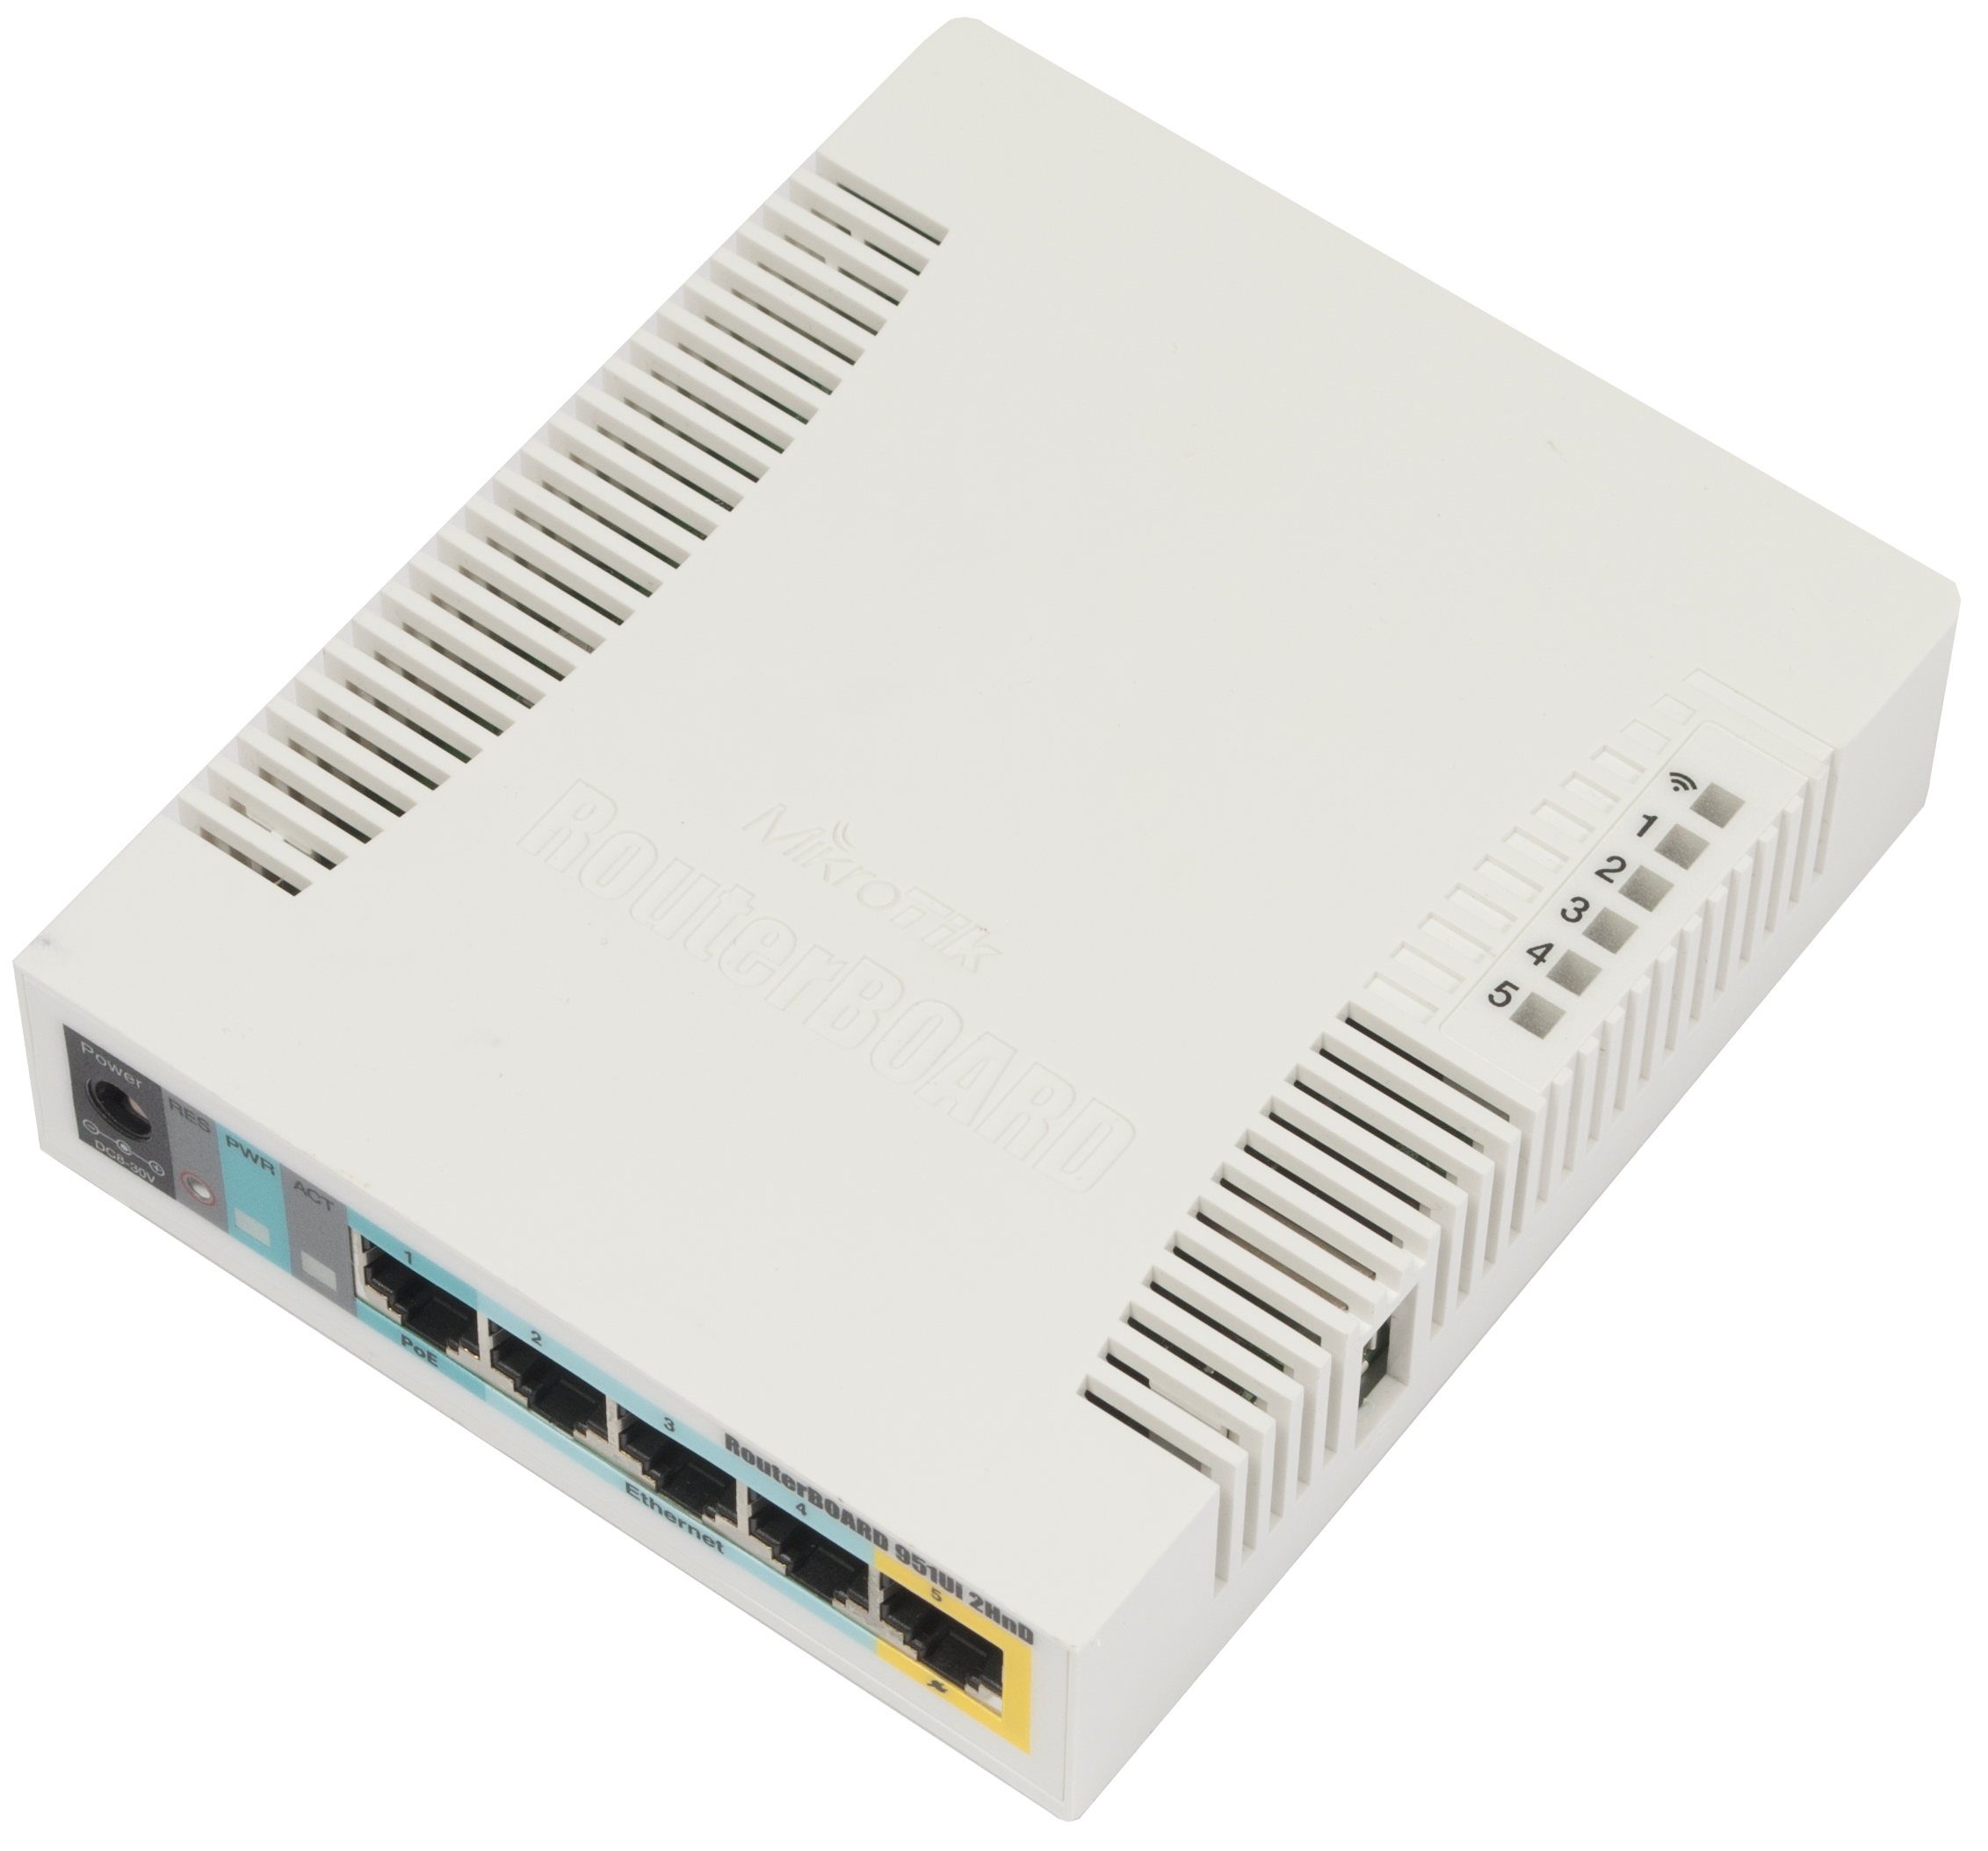 MikroTik Routers and Wireless - Products: RB951Ui-2HnD